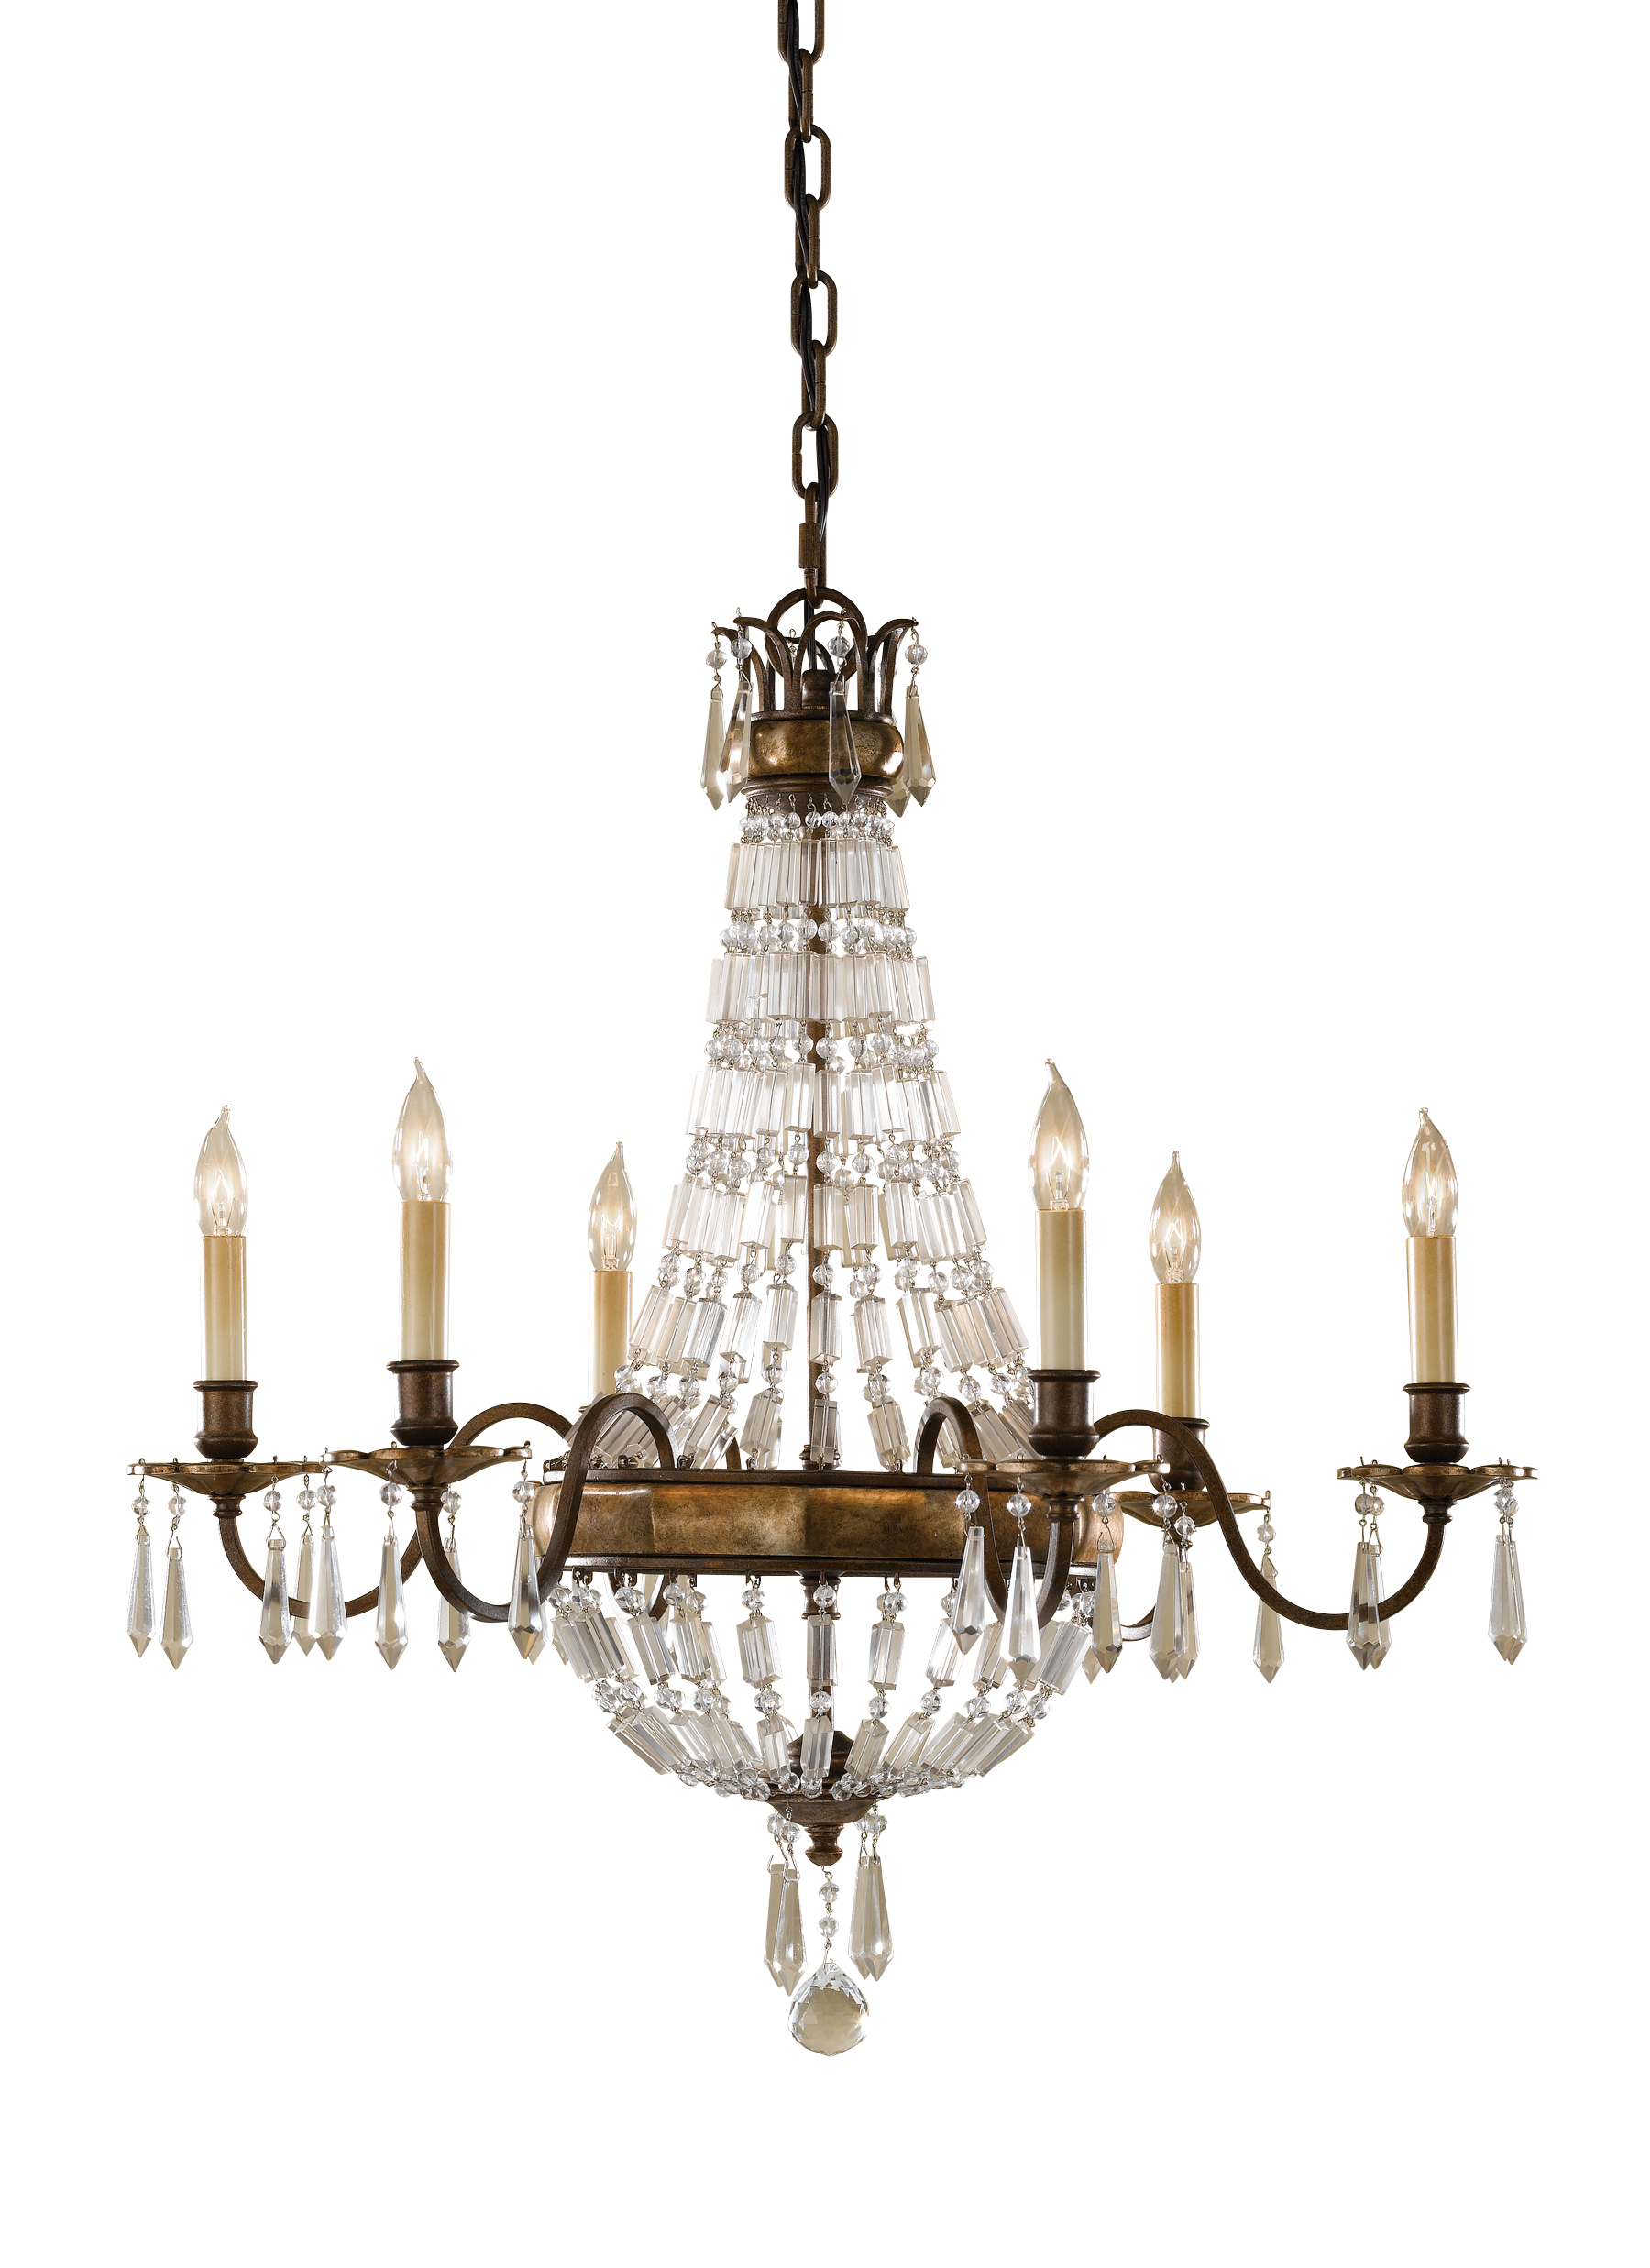 F2461 6OBZ BRB 6 Light Single Tier Chandelier Oxidized Bronze